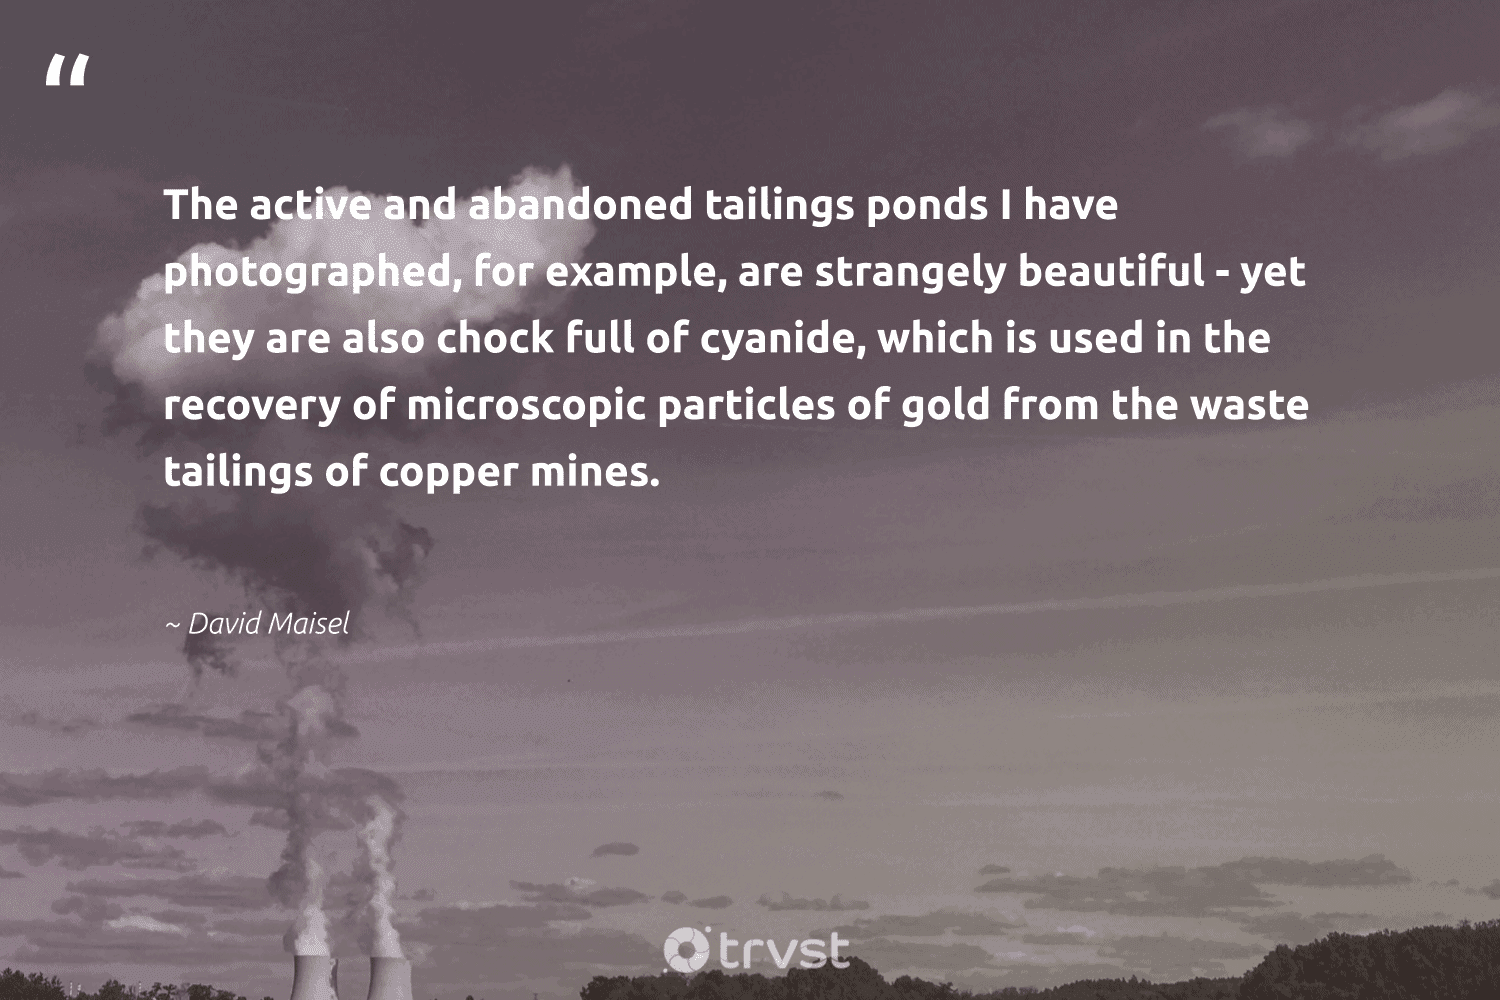 """""""The active and abandoned tailings ponds I have photographed, for example, are strangely beautiful - yet they are also chock full of cyanide, which is used in the recovery of microscopic particles of gold from the waste tailings of copper mines.""""  - David Maisel #trvst #quotes #waste #ecofriendly #socialimpact #sustainable #collectiveaction #naturelovers #beinspired #gogreen #thinkgreen #wildernessnation"""